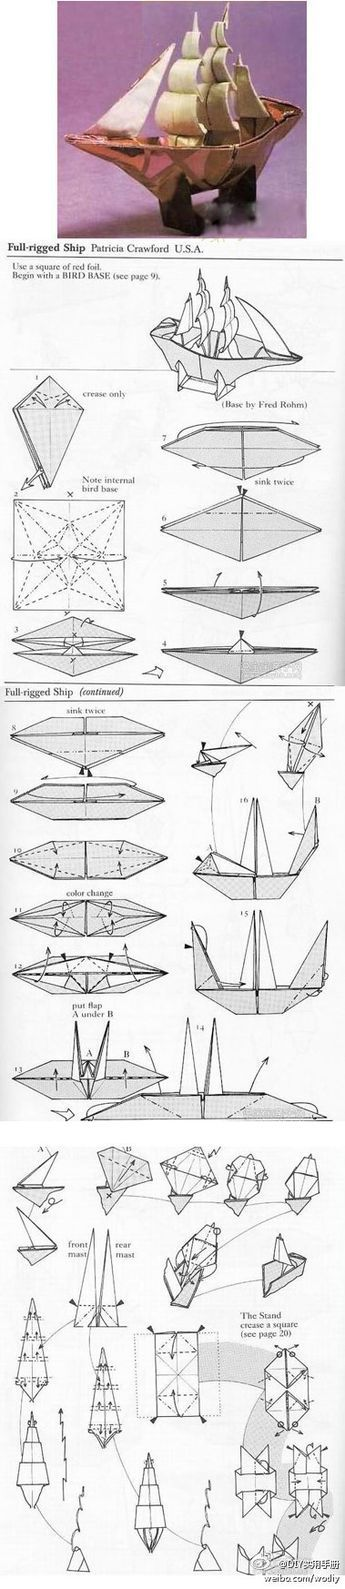 Dreidimensionale Origami Segelboot Tutorial ; I've tried folding this model before, only foil backed wrapping paper works since it holds the shape of the sails #Origami #Boat